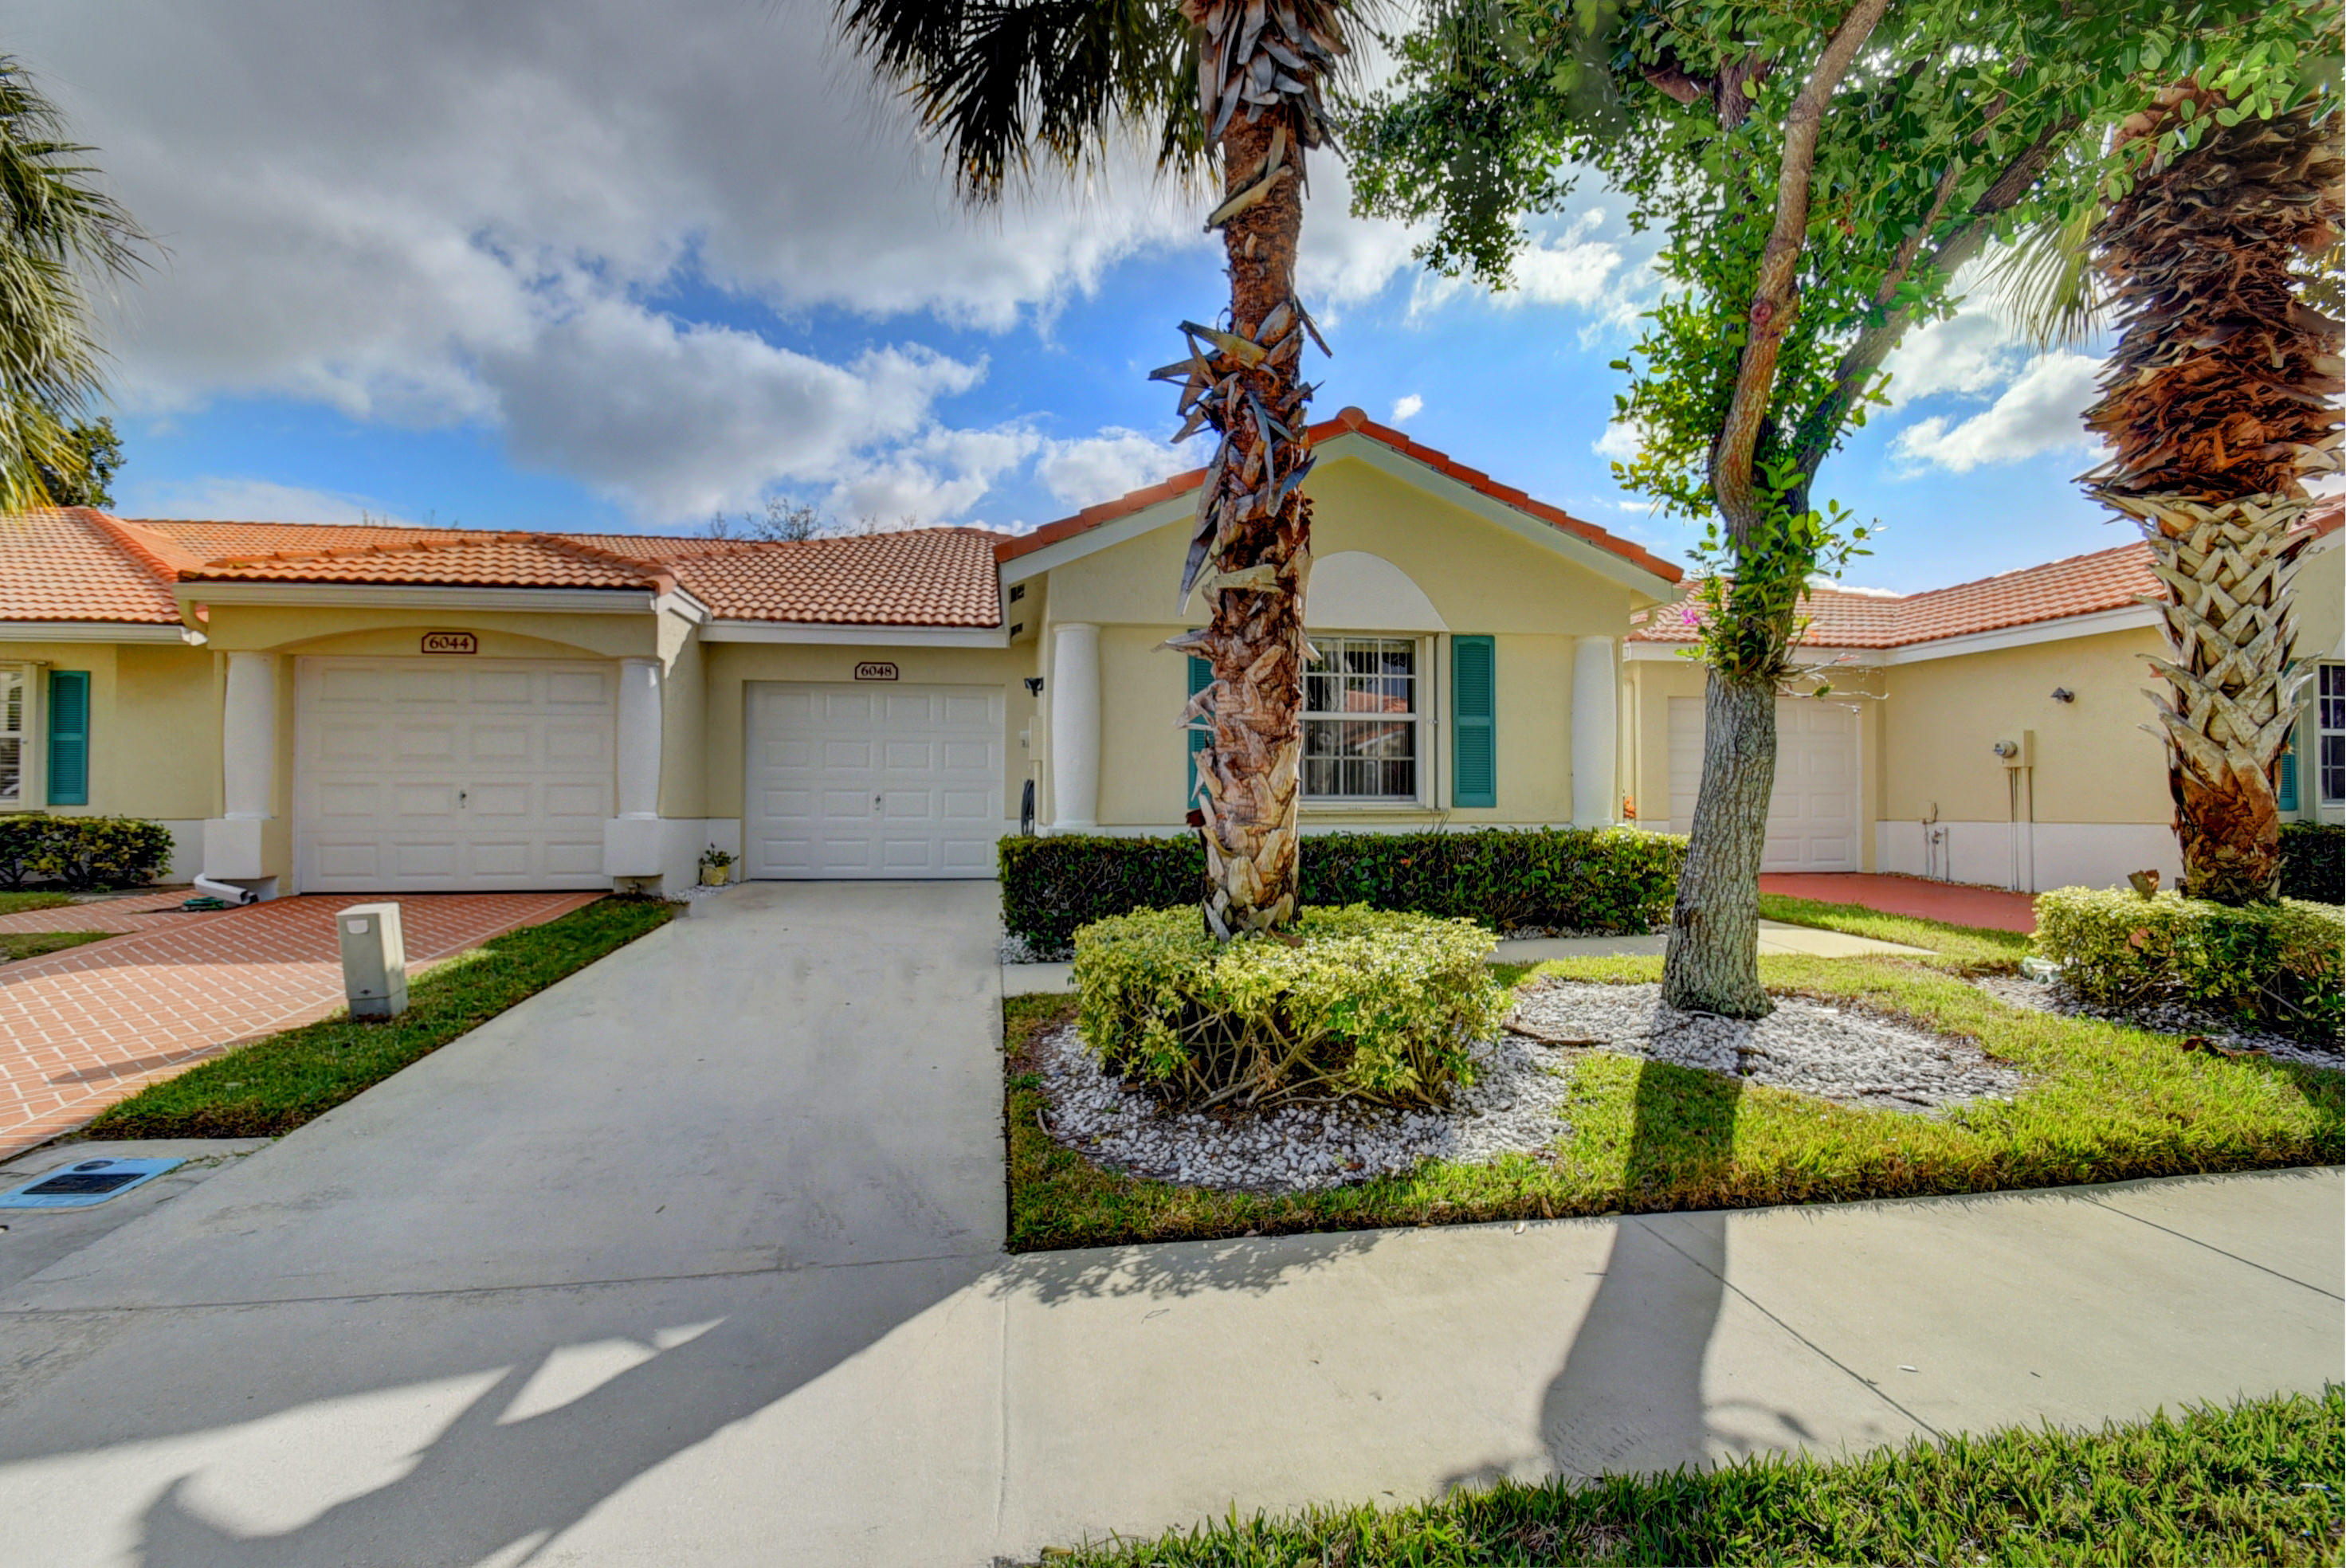 FLORAL LAKES PH 3 AND 4 home 6048 Petunia Road Delray Beach FL 33484